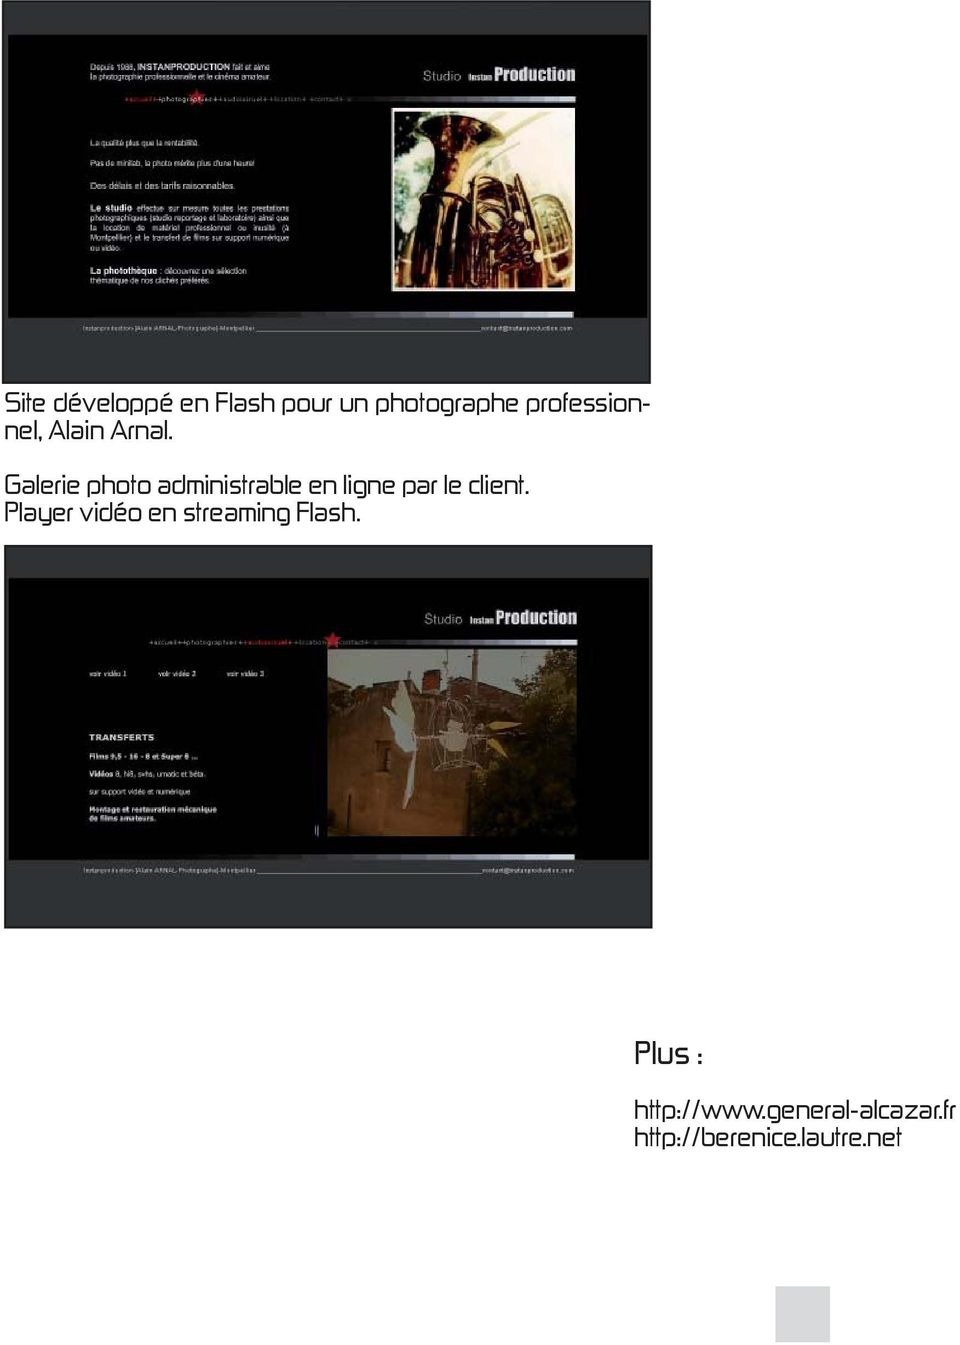 Galerie photo administrable en ligne par le client.